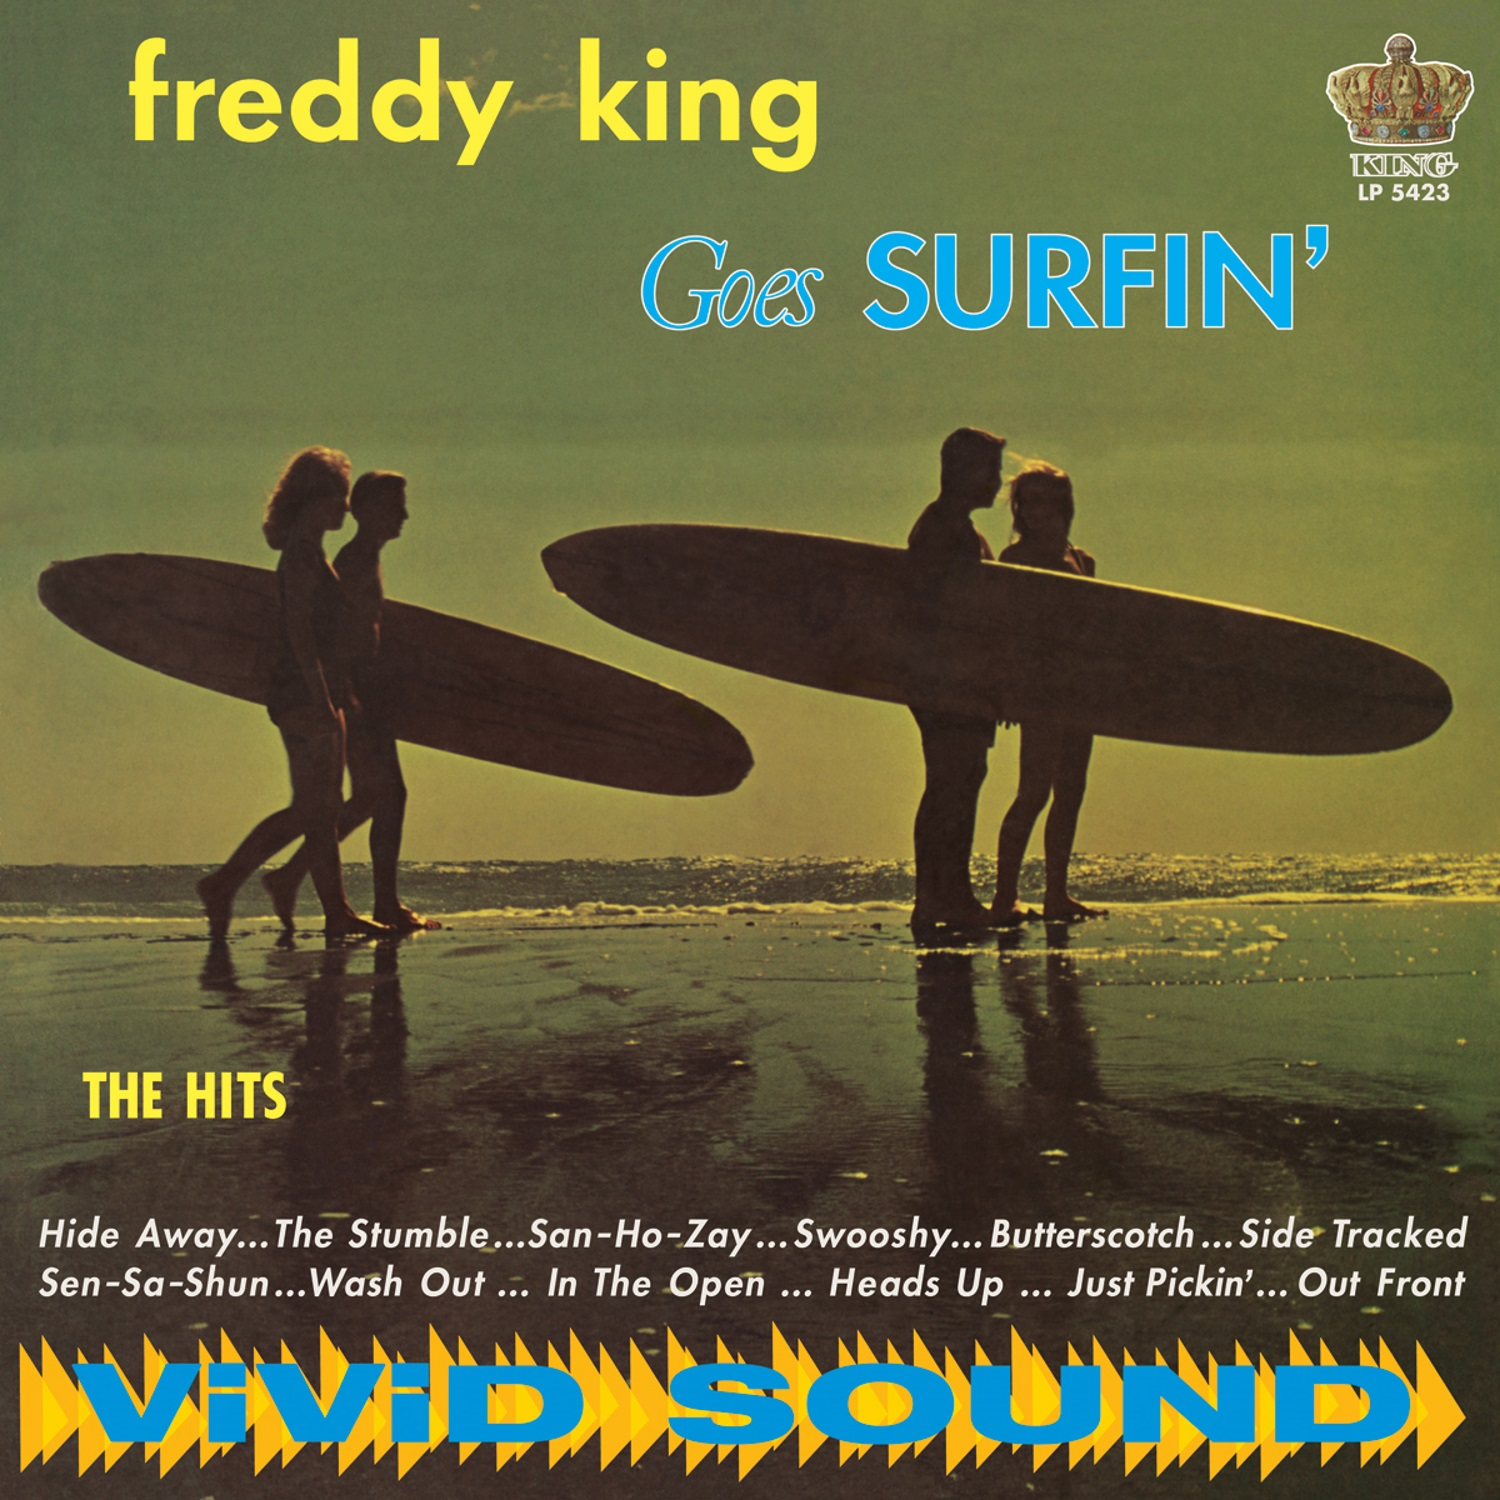 King, Freddy (Freddie) - Freddy King Goes Surfin' LP